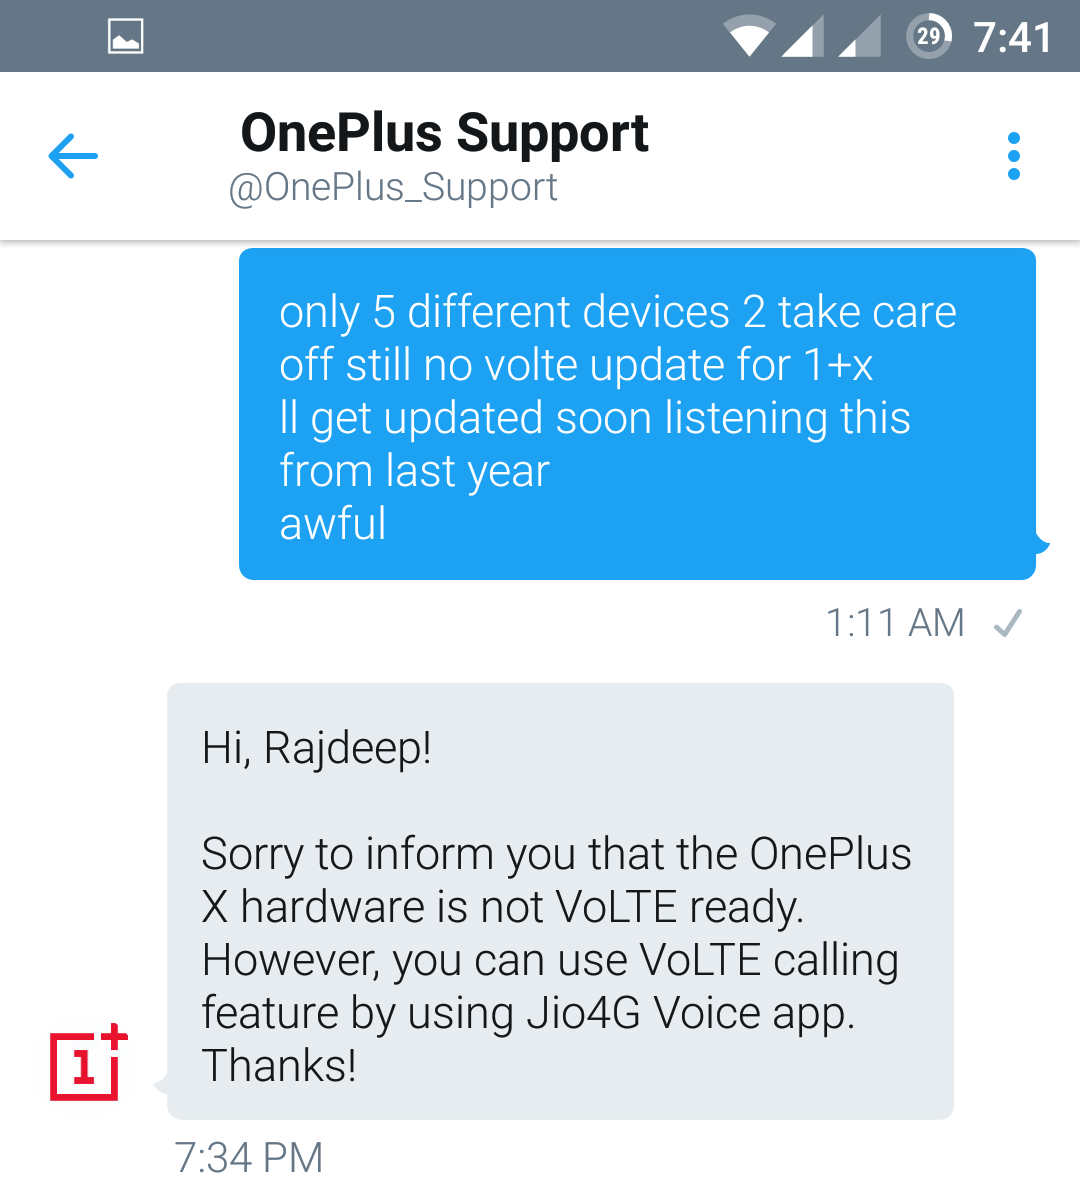 Network/Connectivity - VoLTE for OnePlus X - OnePlus Community